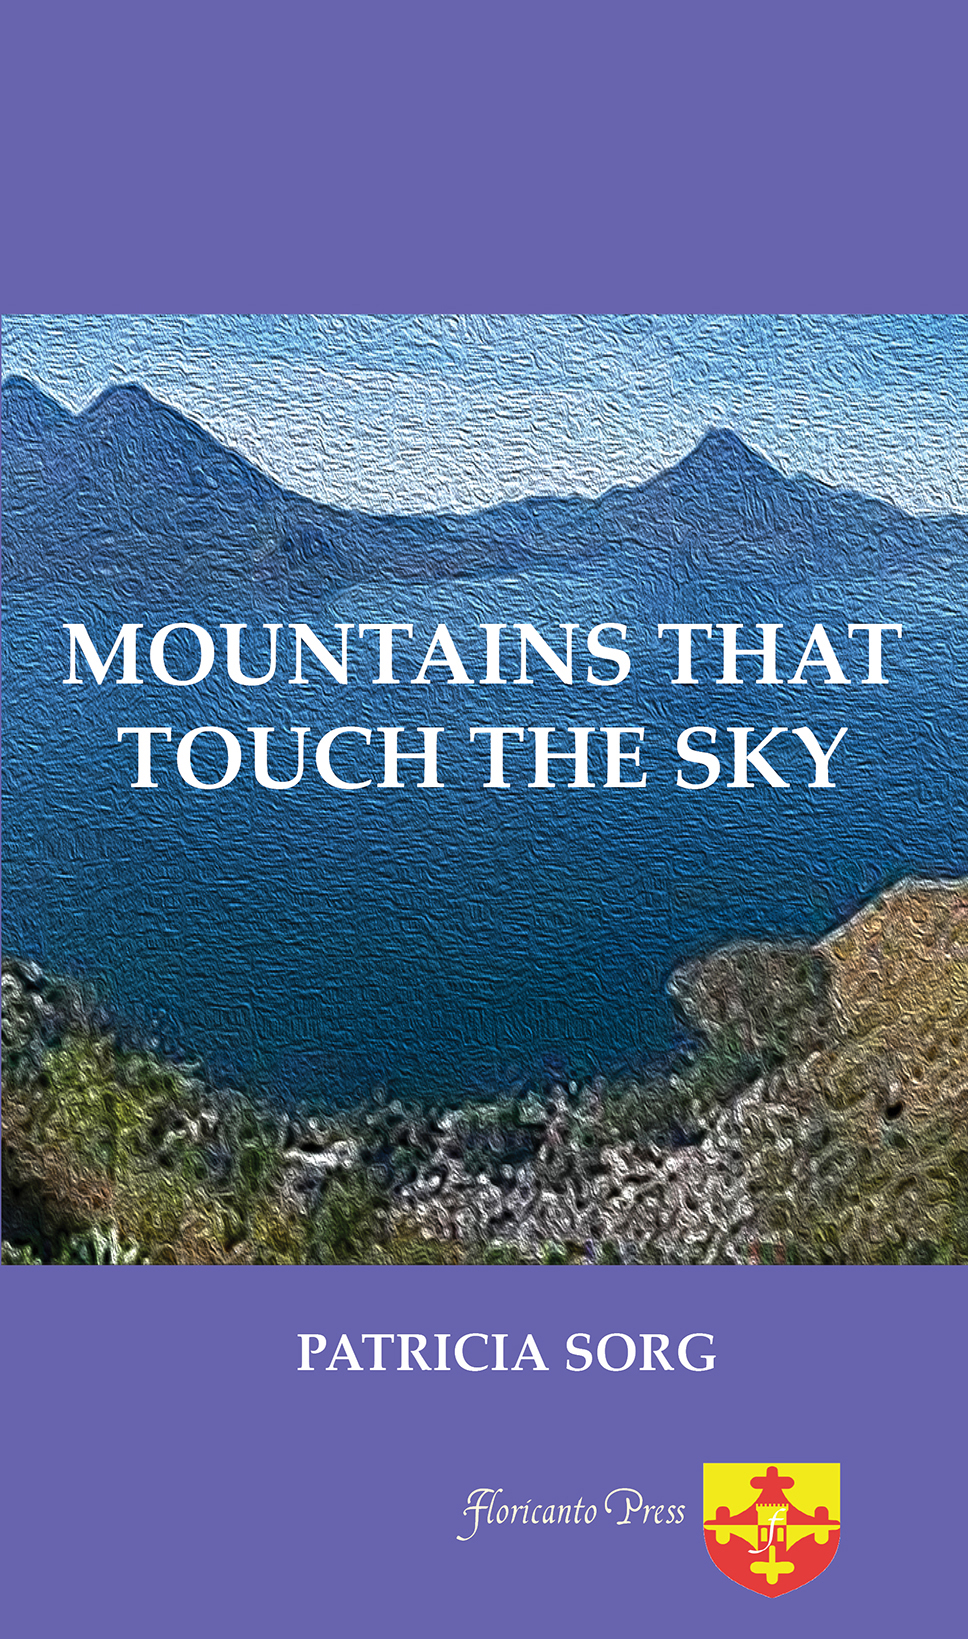 Mountains that touch the sky. By Patricia Sorg.